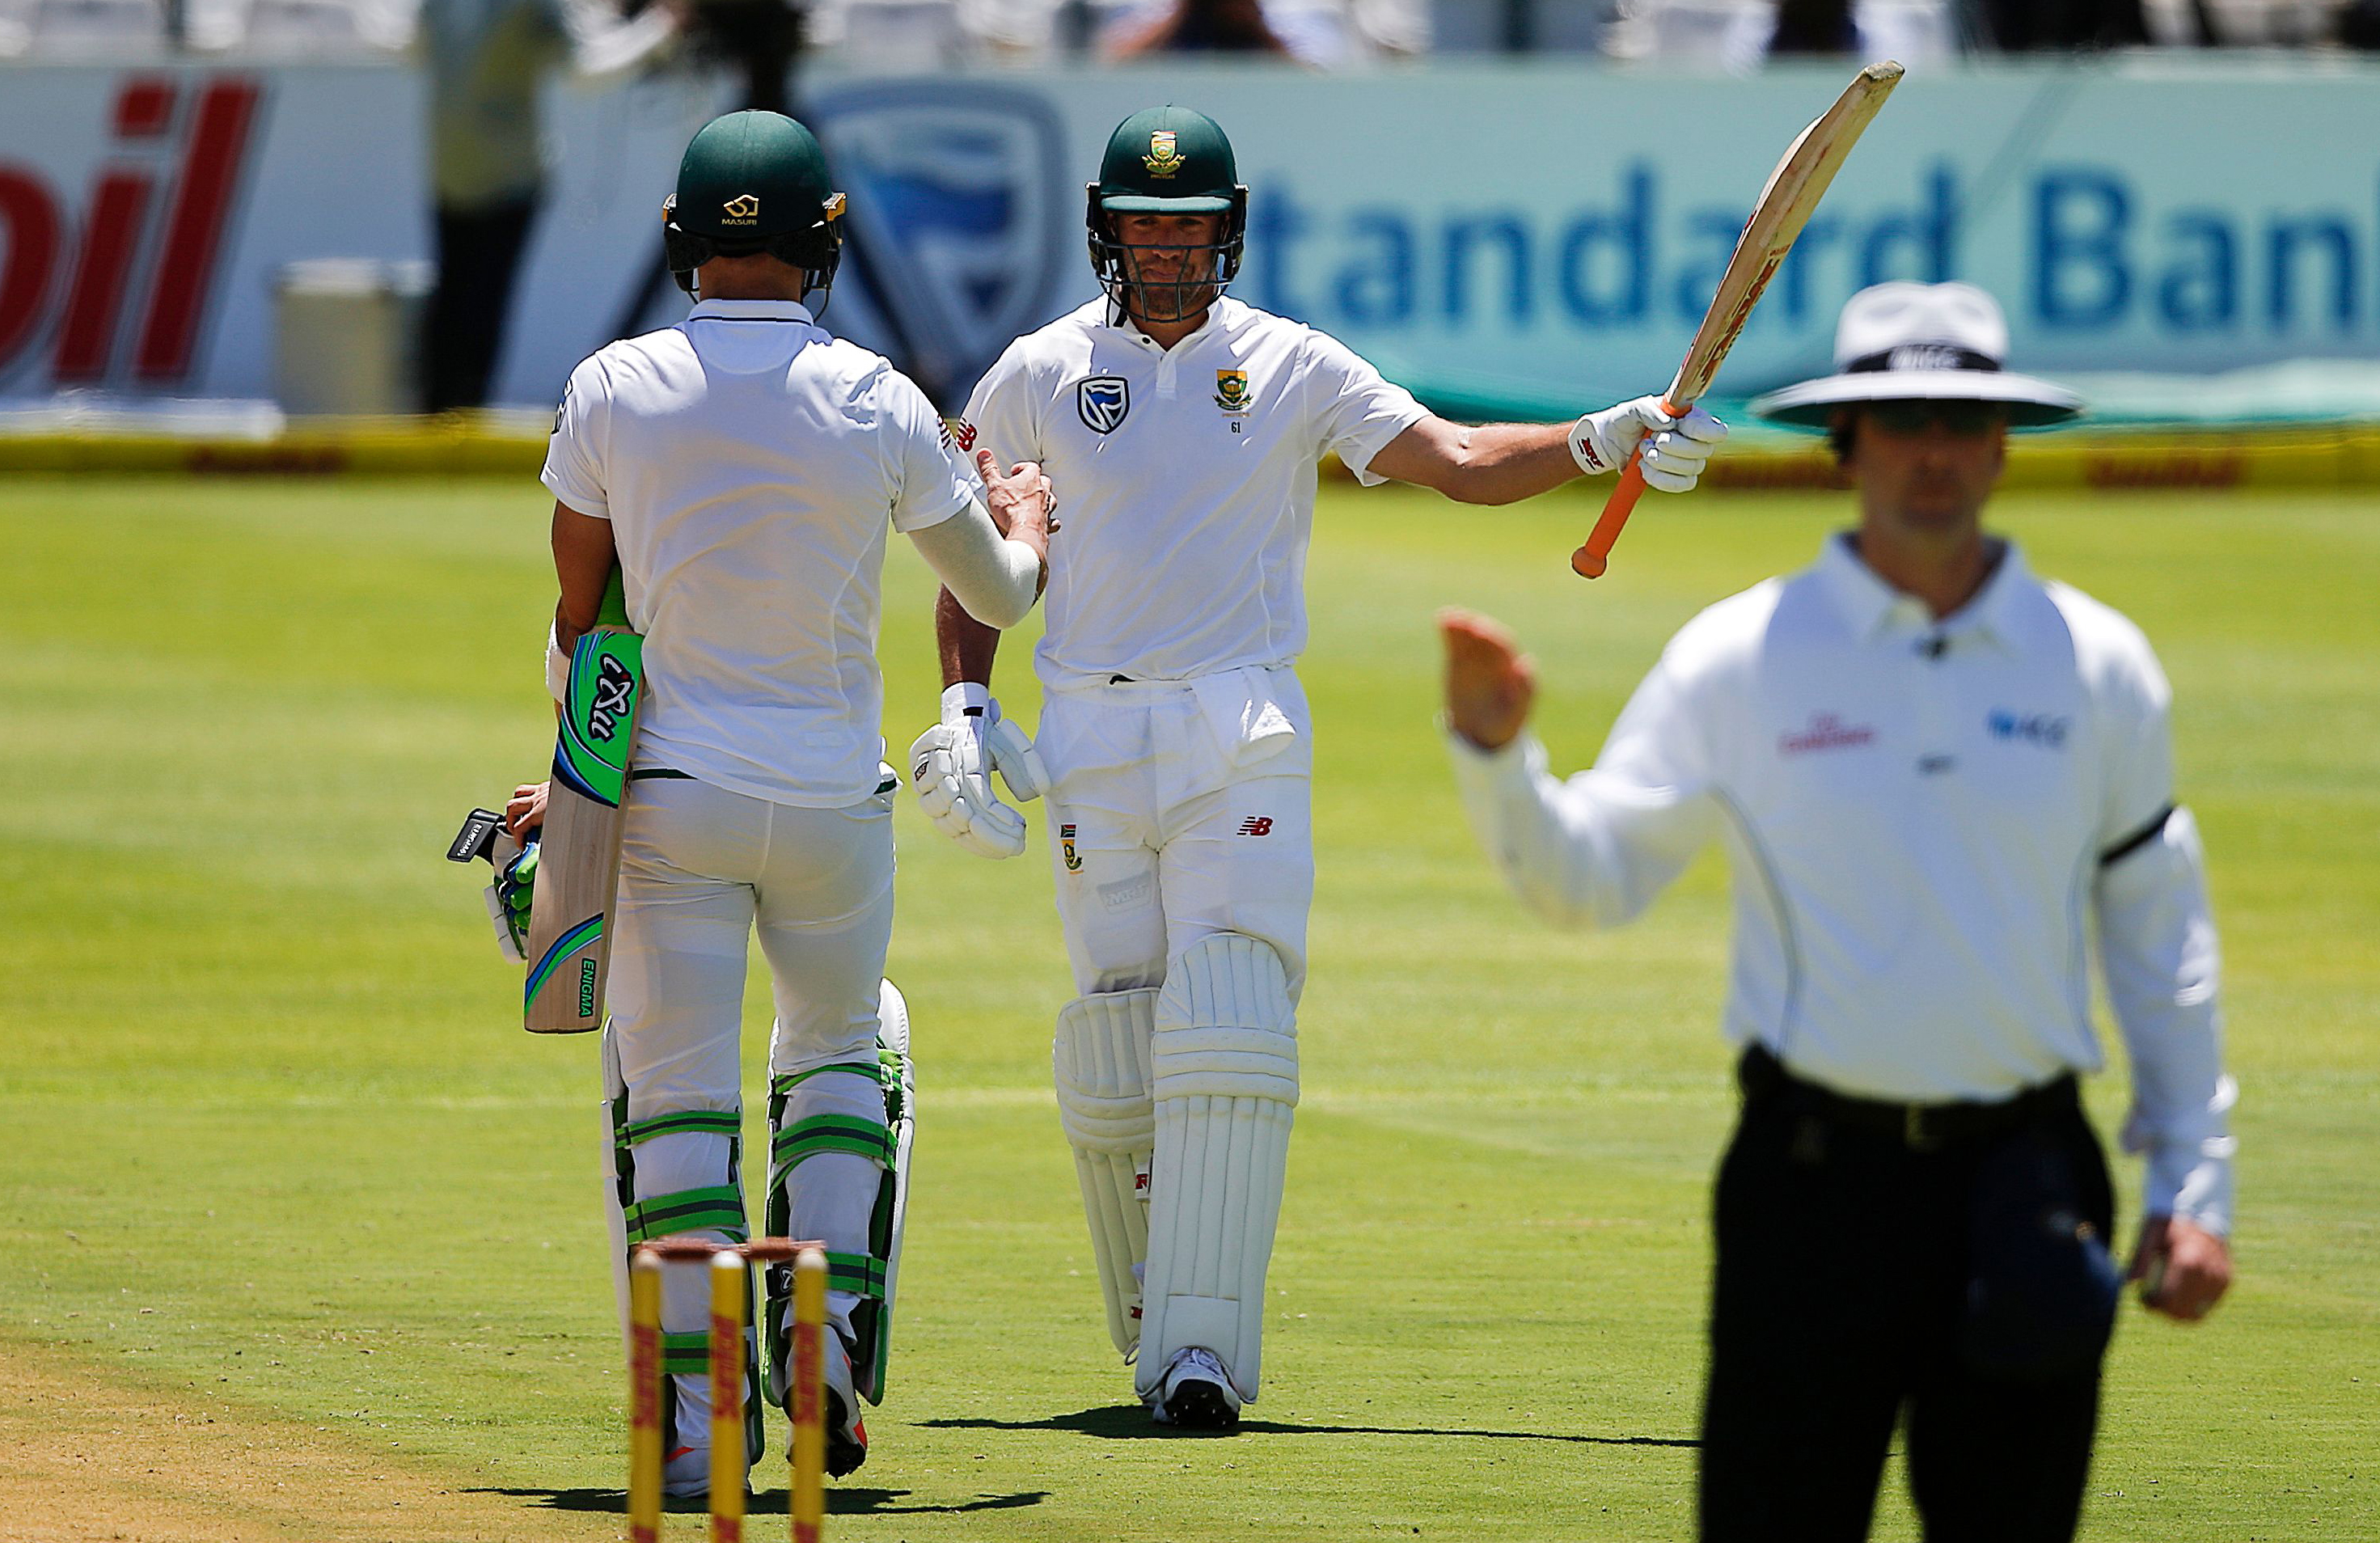 De Villiers celebrates a counter-attacking half-century // Getty